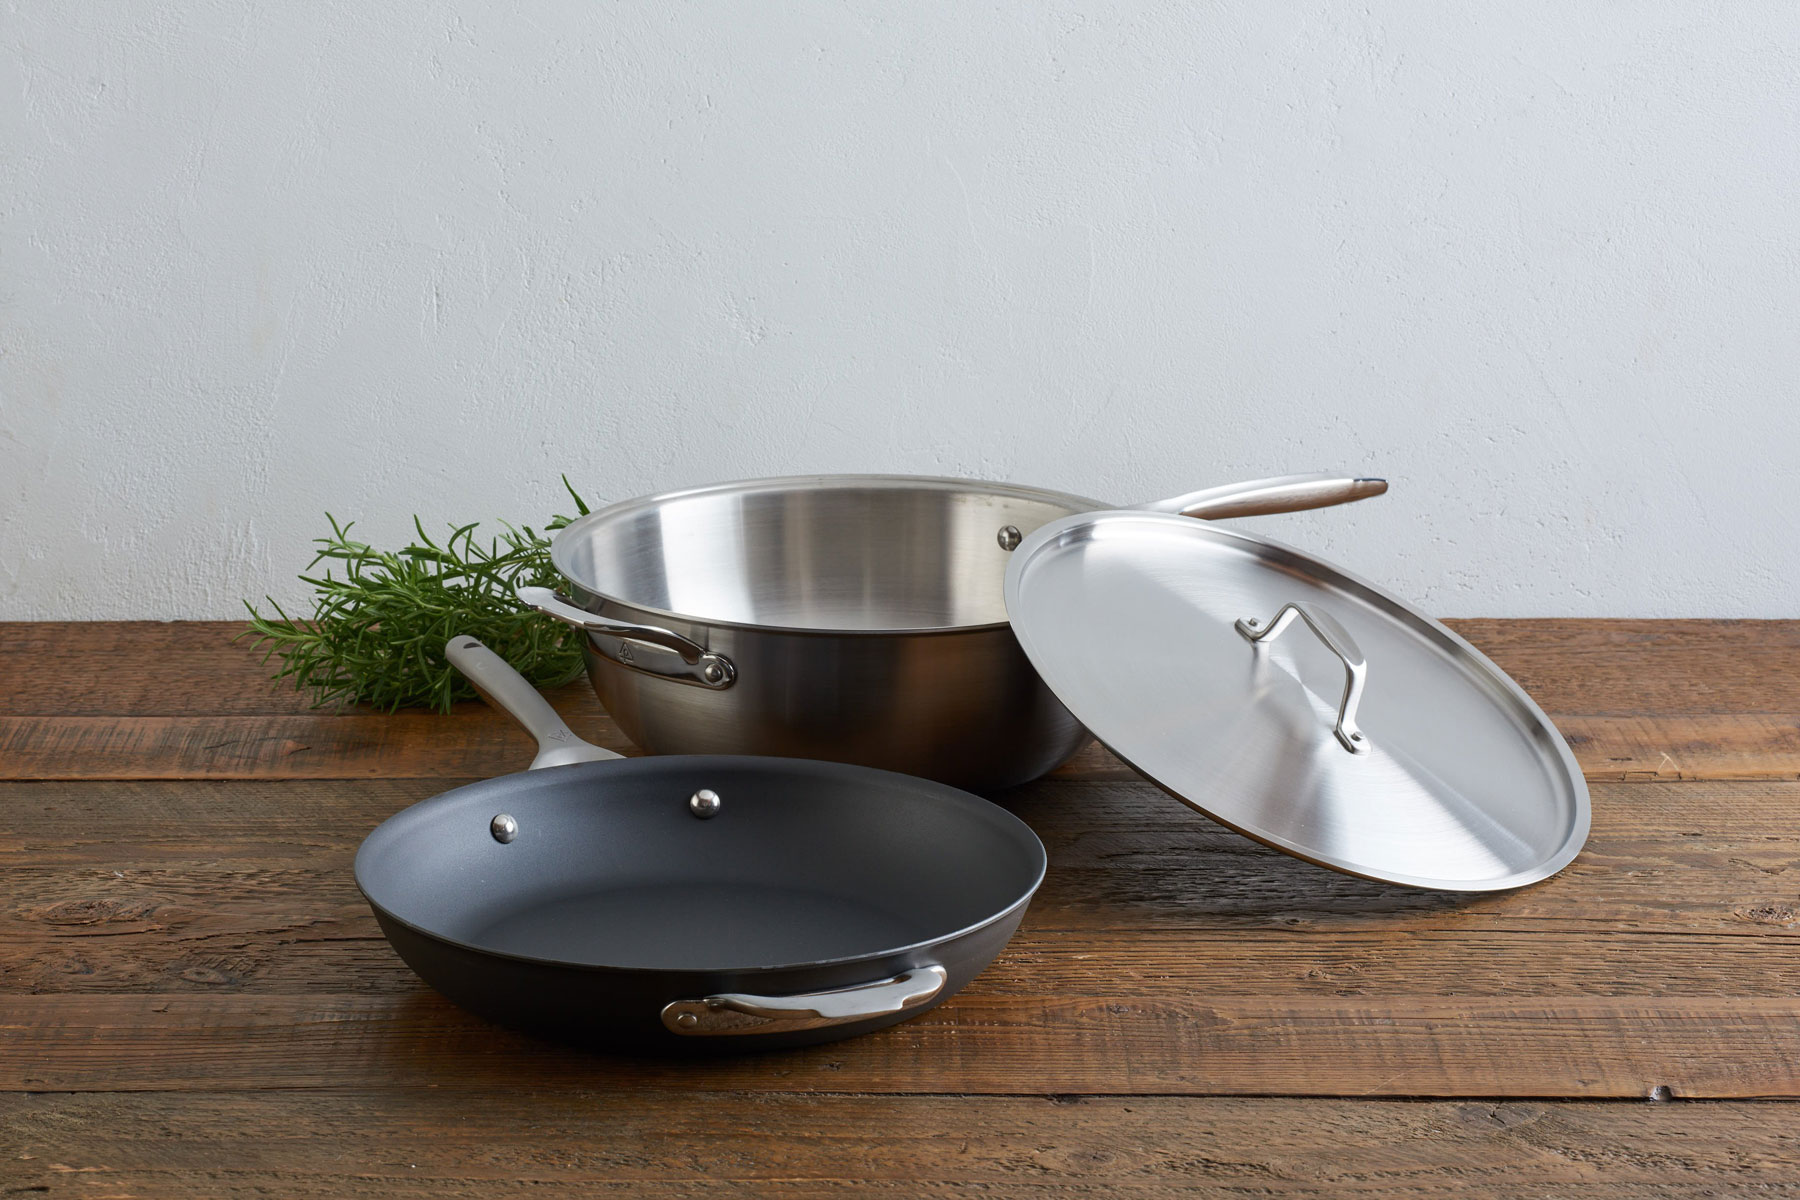 Stainless steel and cast iron pans